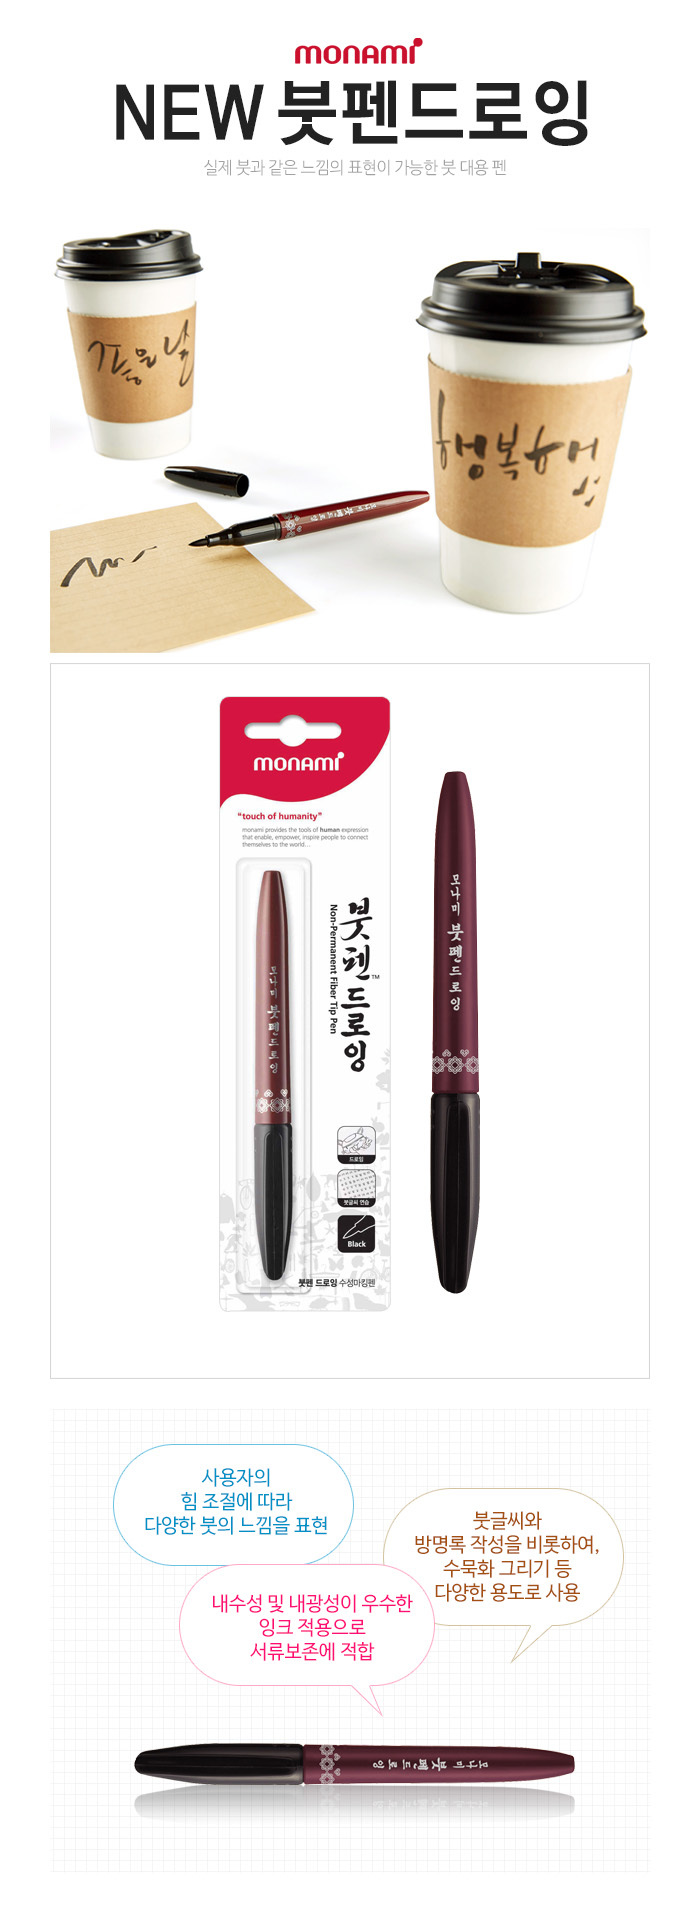 Monami New Brush Pen Drawing 1tier End 6 14 2020 309 Pm Eyebrow 12mouth Calligraphy